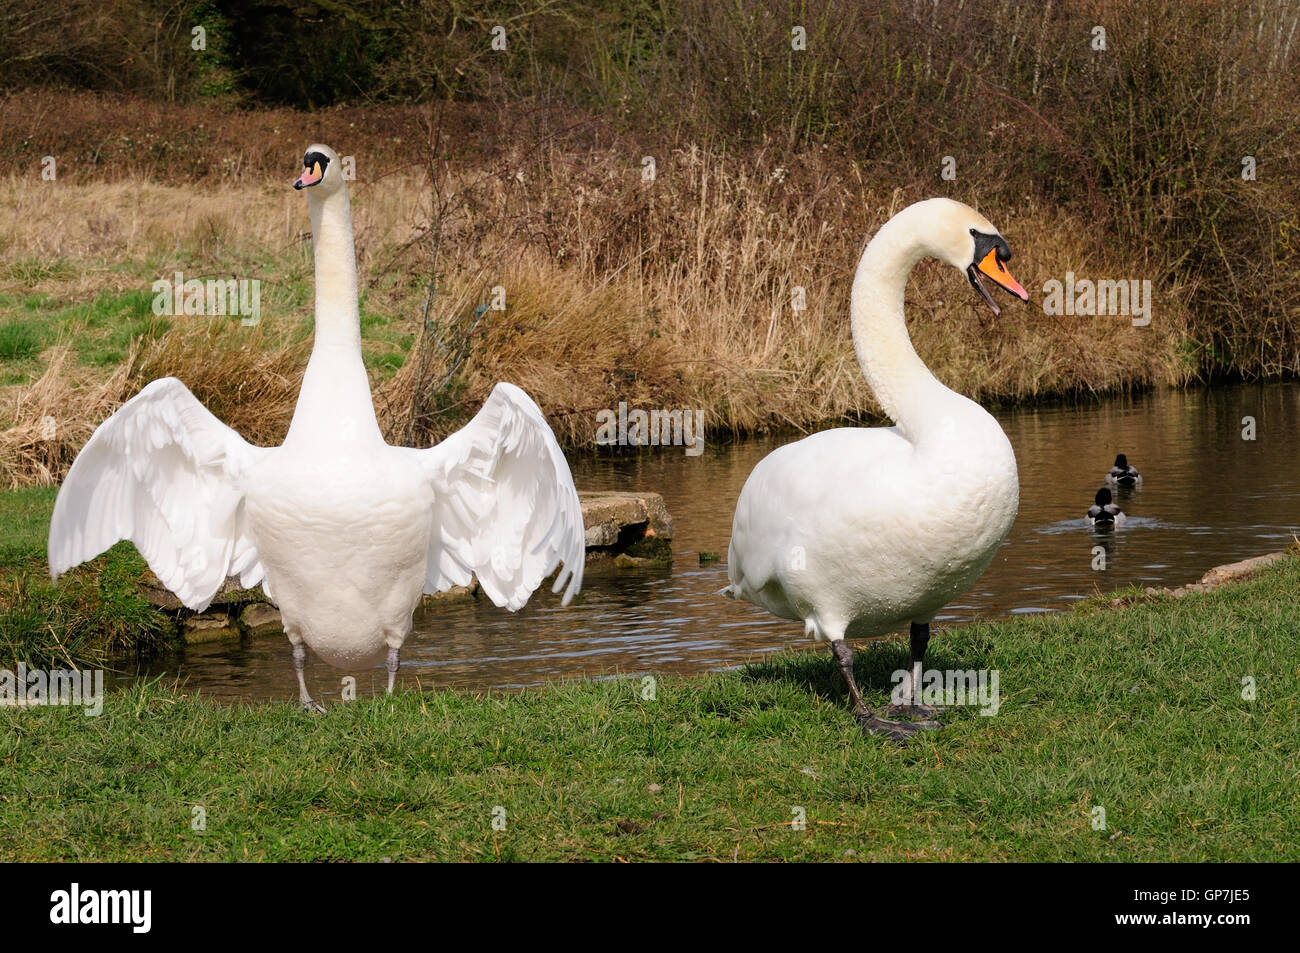 A pair of mute swans defending their territory on a canal bank, one with wings outstretched and neck extended as - Stock Image